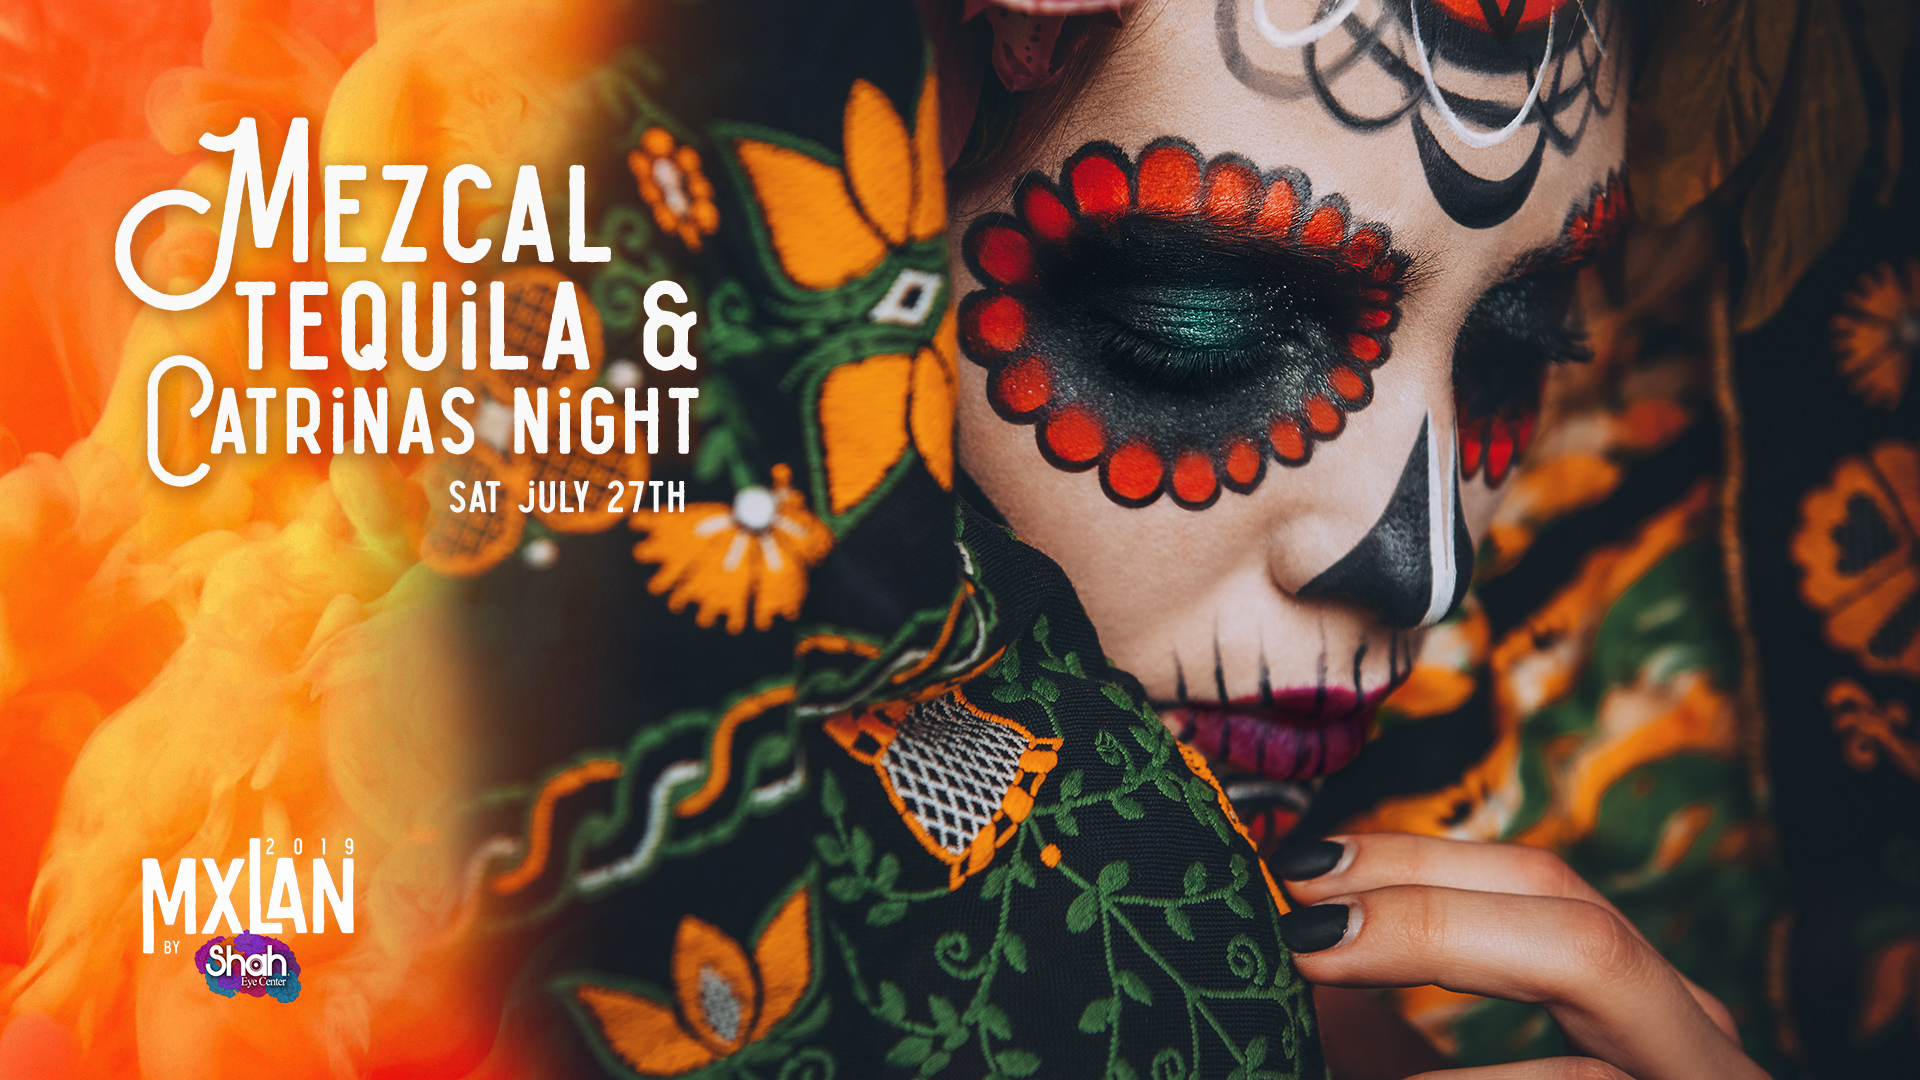 mxlan-mezcal-tequila-and-catrinas-mcallen-festival-border-music-calenda-parade-vacation-texas-san-antonio-south-padre-island-web